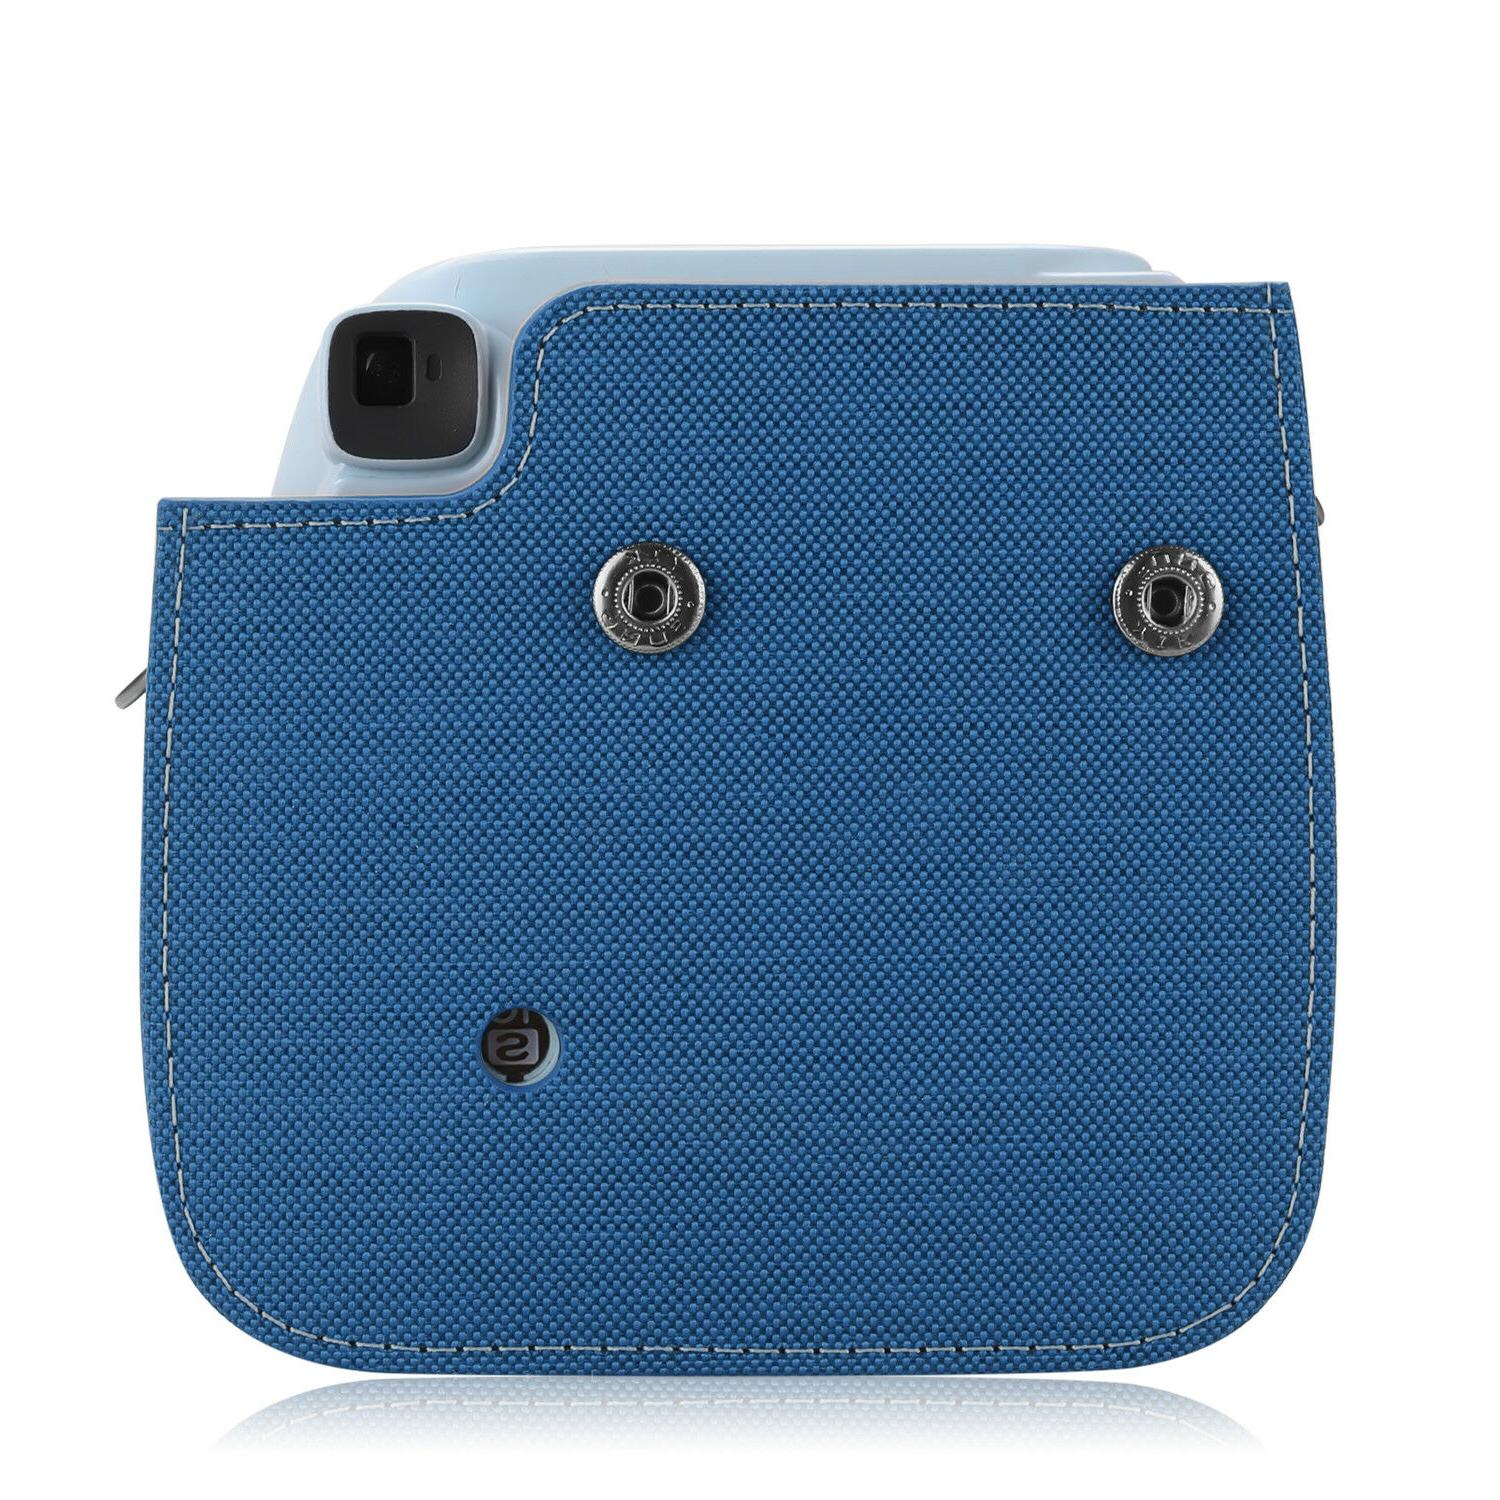 Fabric Case Cover with Strap for Fujifilm /